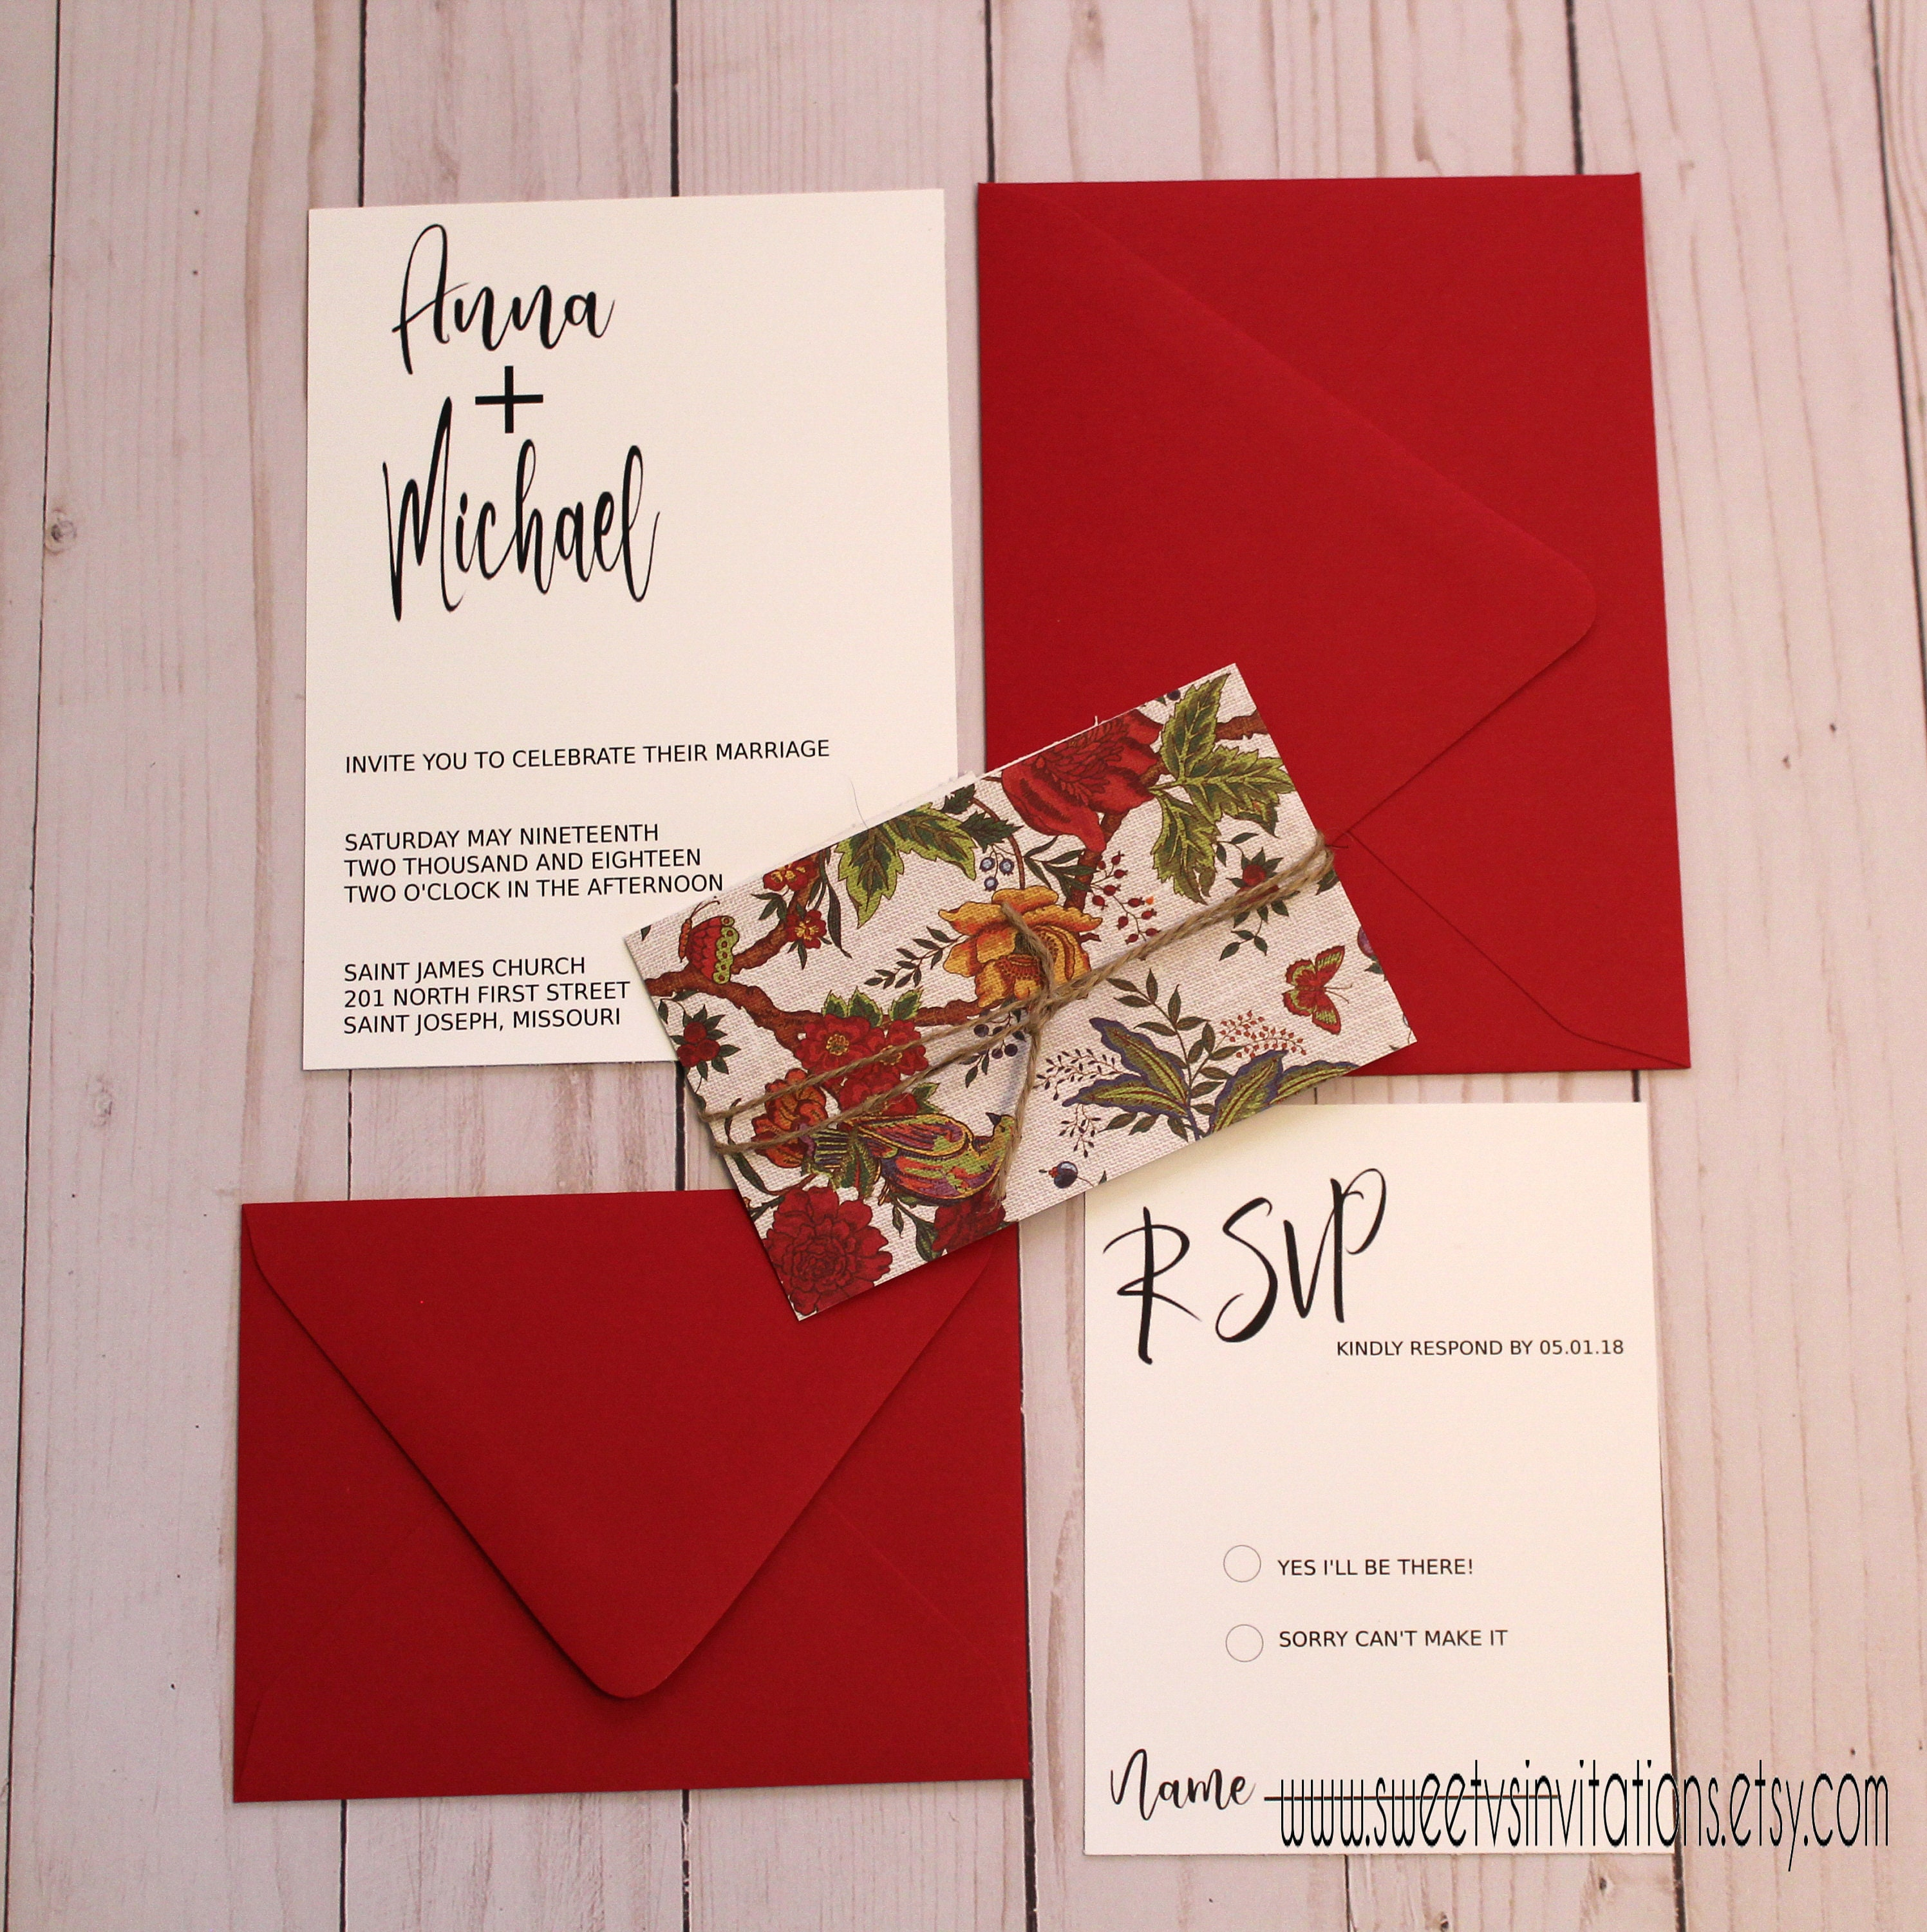 Black and White Wedding Invitation with Red Floral and Twine